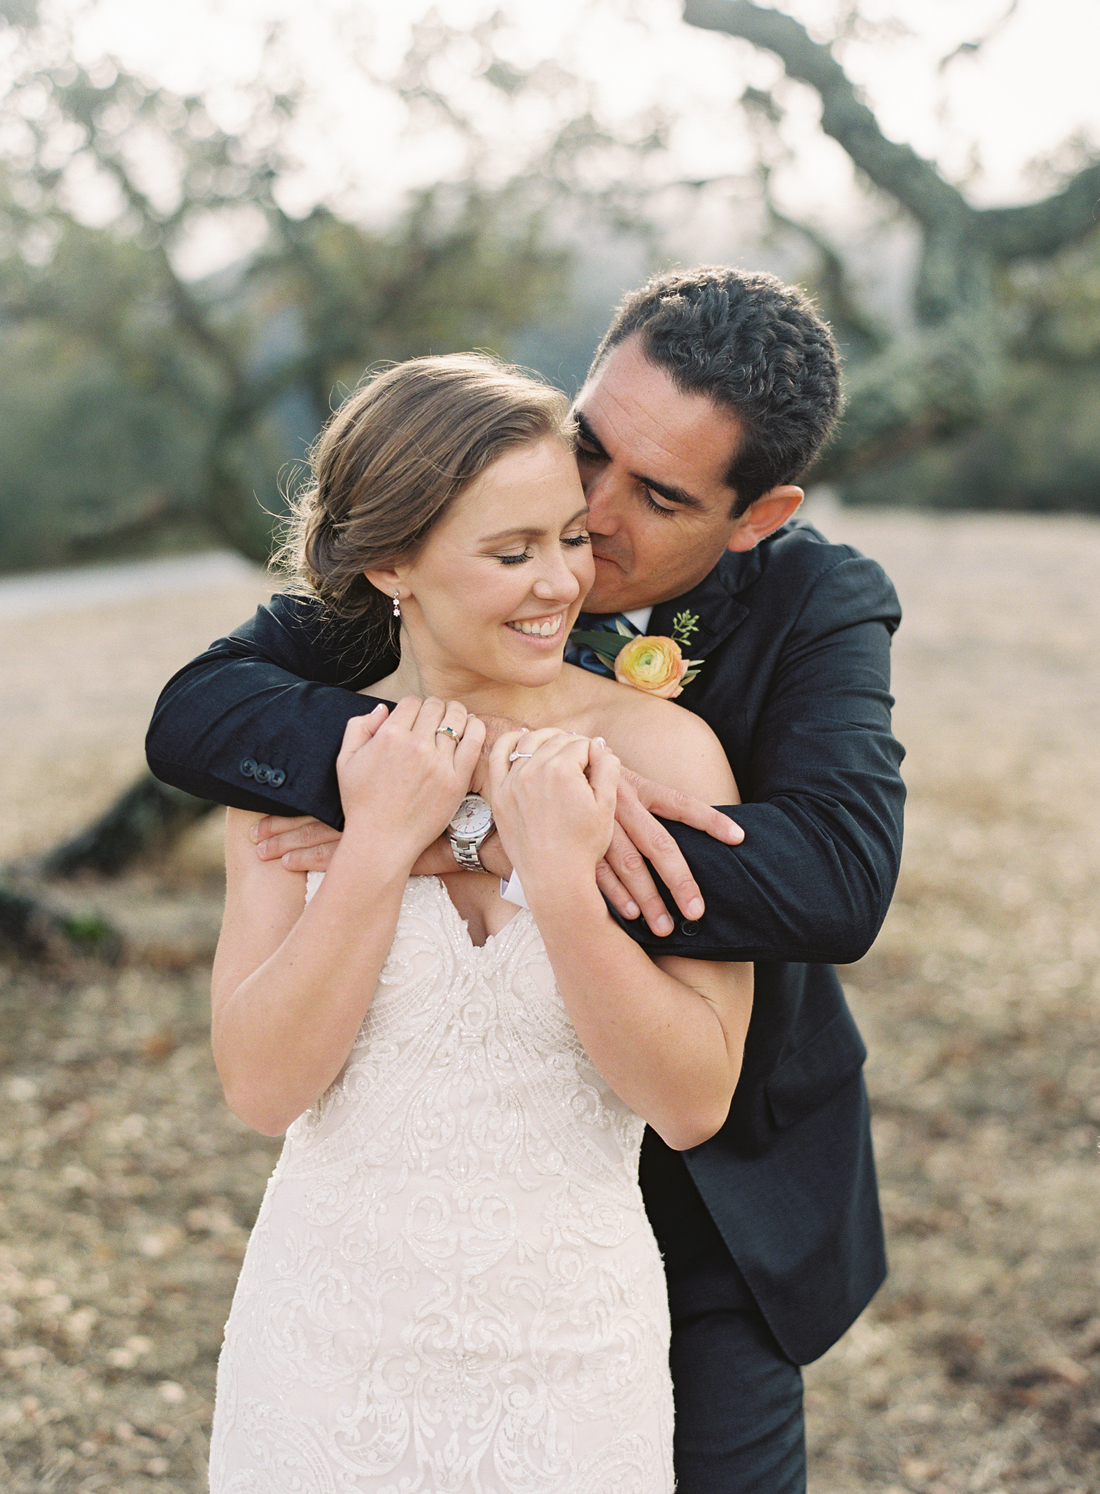 groom wrapping arms around bride from behind smiling